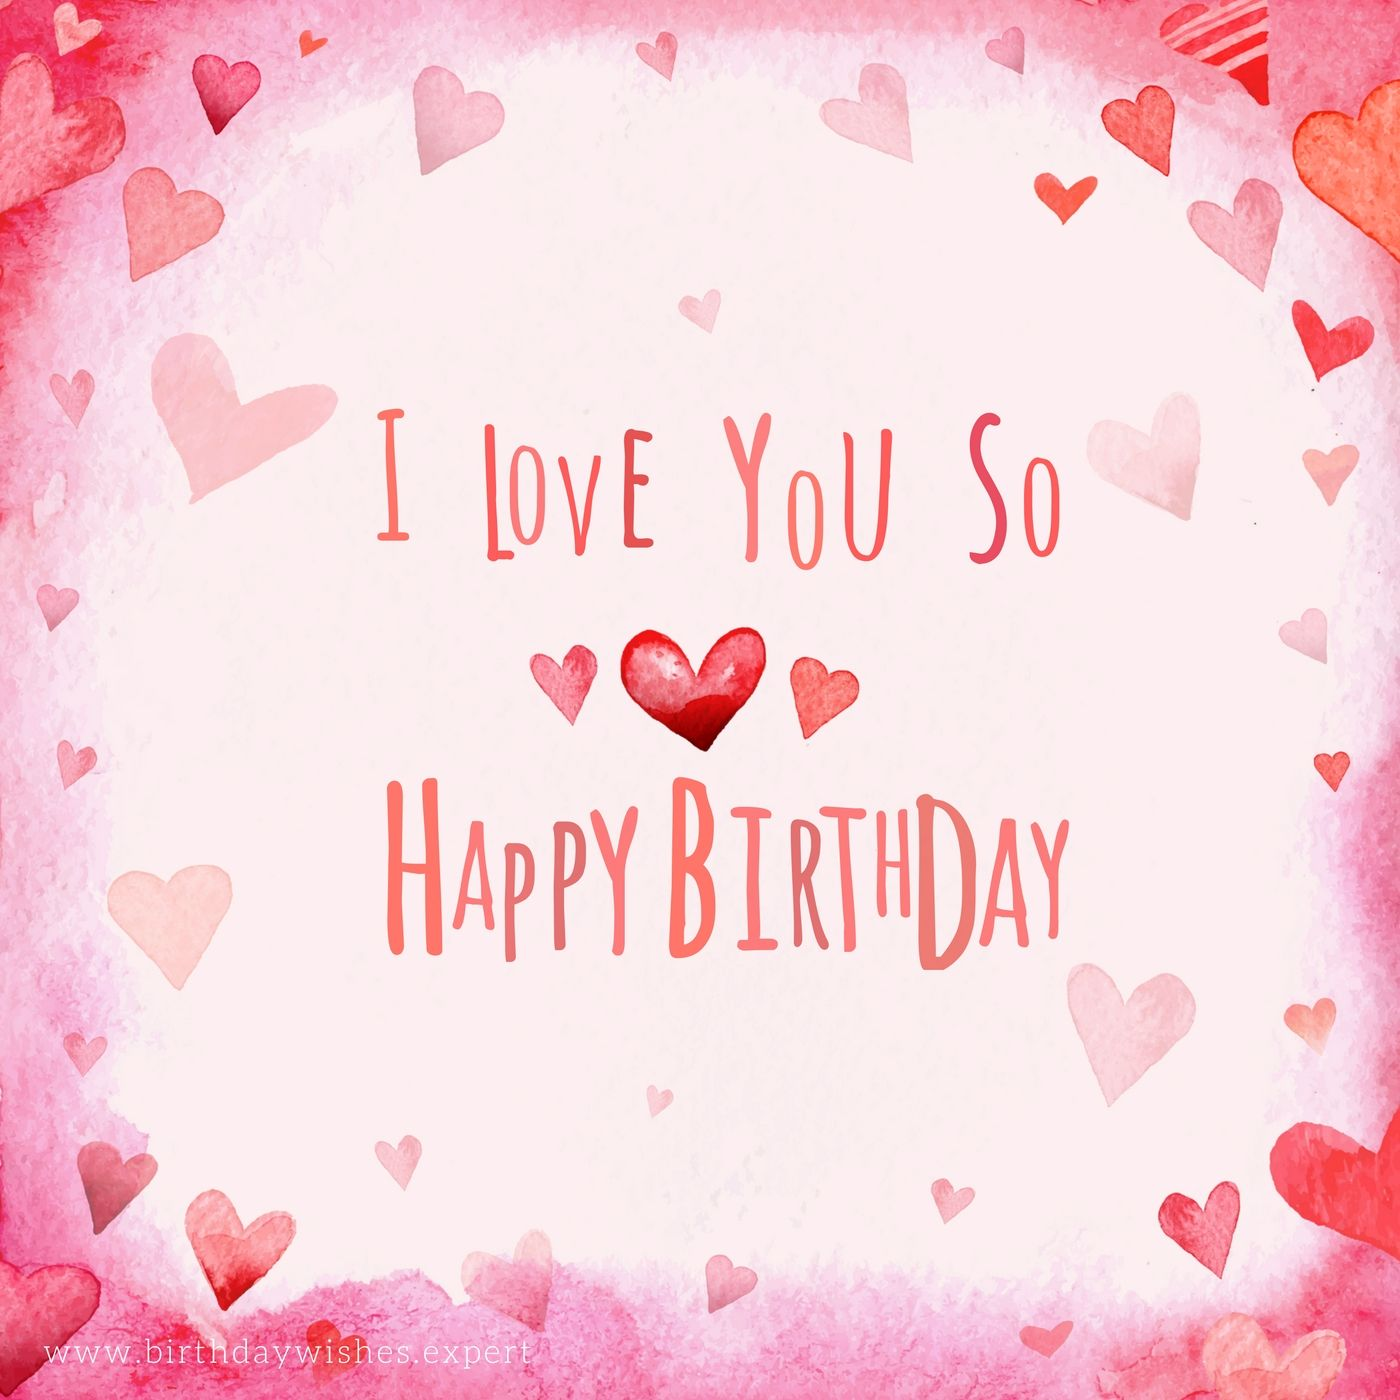 Birthday Wishes Expert Wishes Quotes And Birthday Messages Romantic Birthday Wishes Happy Birthday Hearts Unique Birthday Wishes